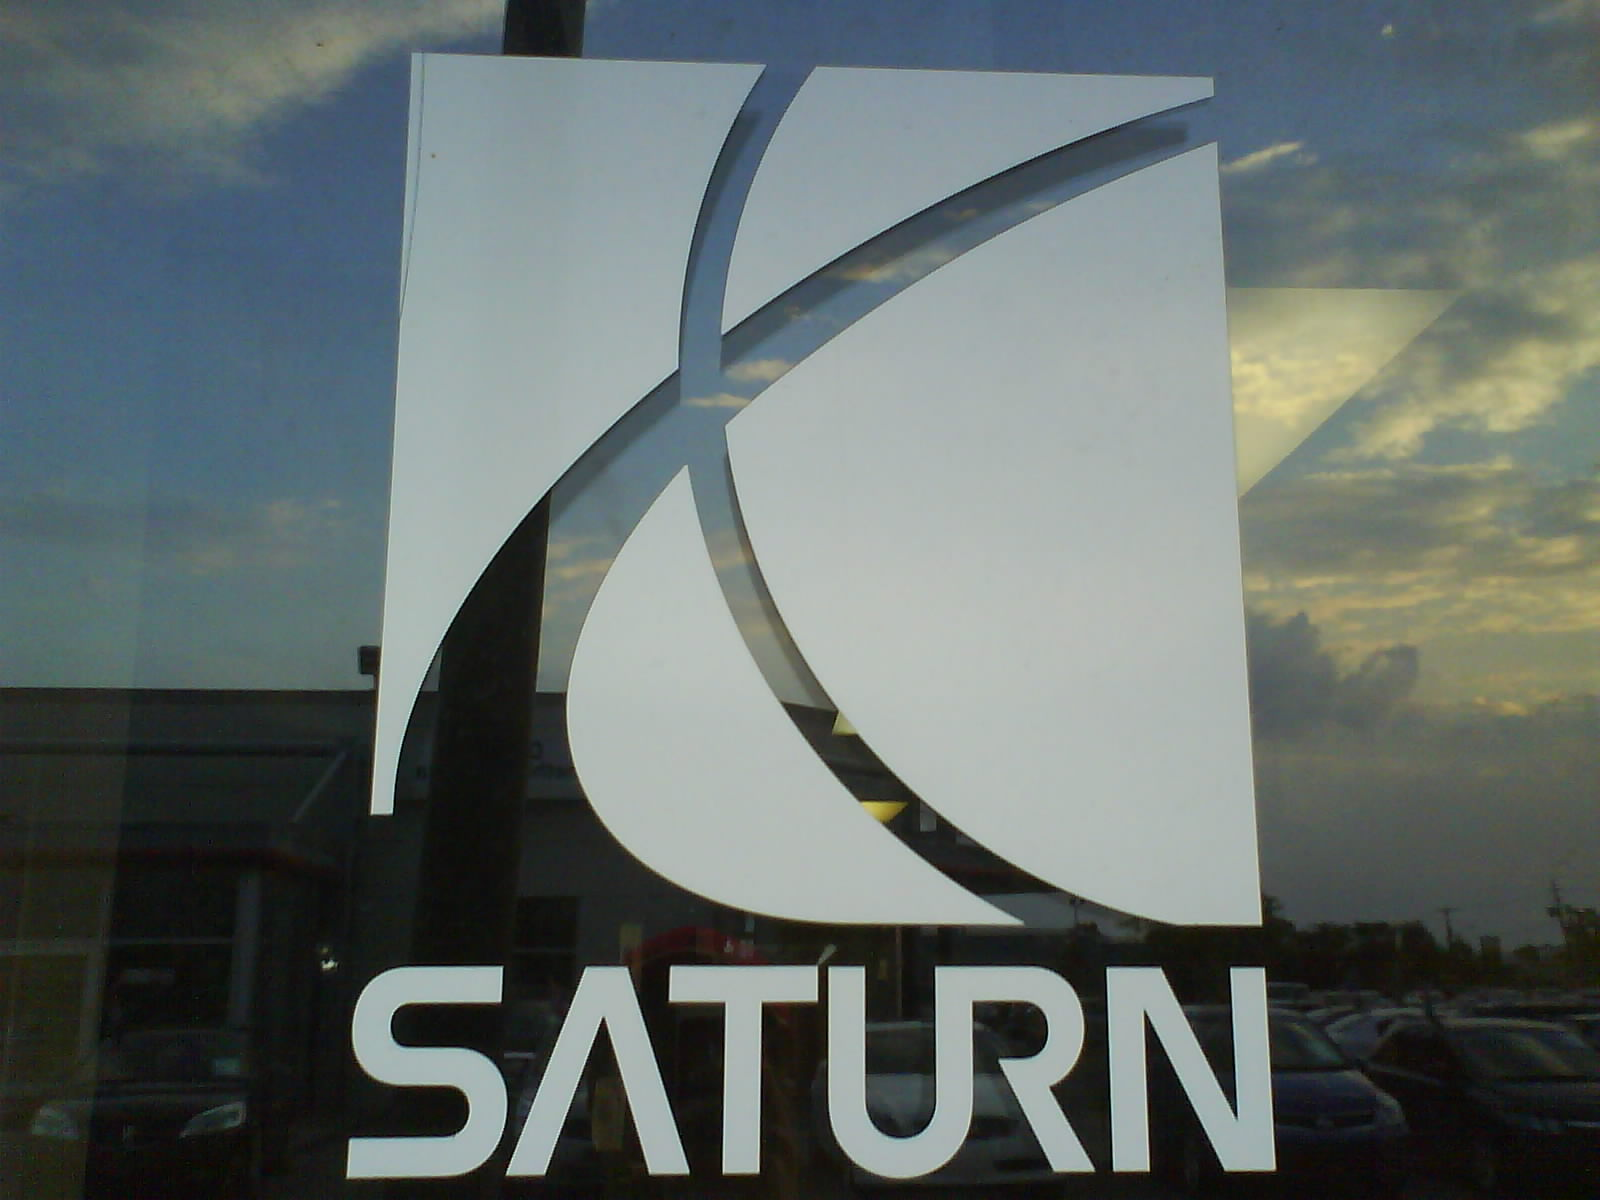 saturn corporation quality of work life programs Explain aspects of quality of work life programs explain aspects of quality of work life programs saturn corporation (a completely owned subsidiary of general motors from 1984 to 1994) outlines successful and unique adaptation of new approach to organizing in us automobile industry.